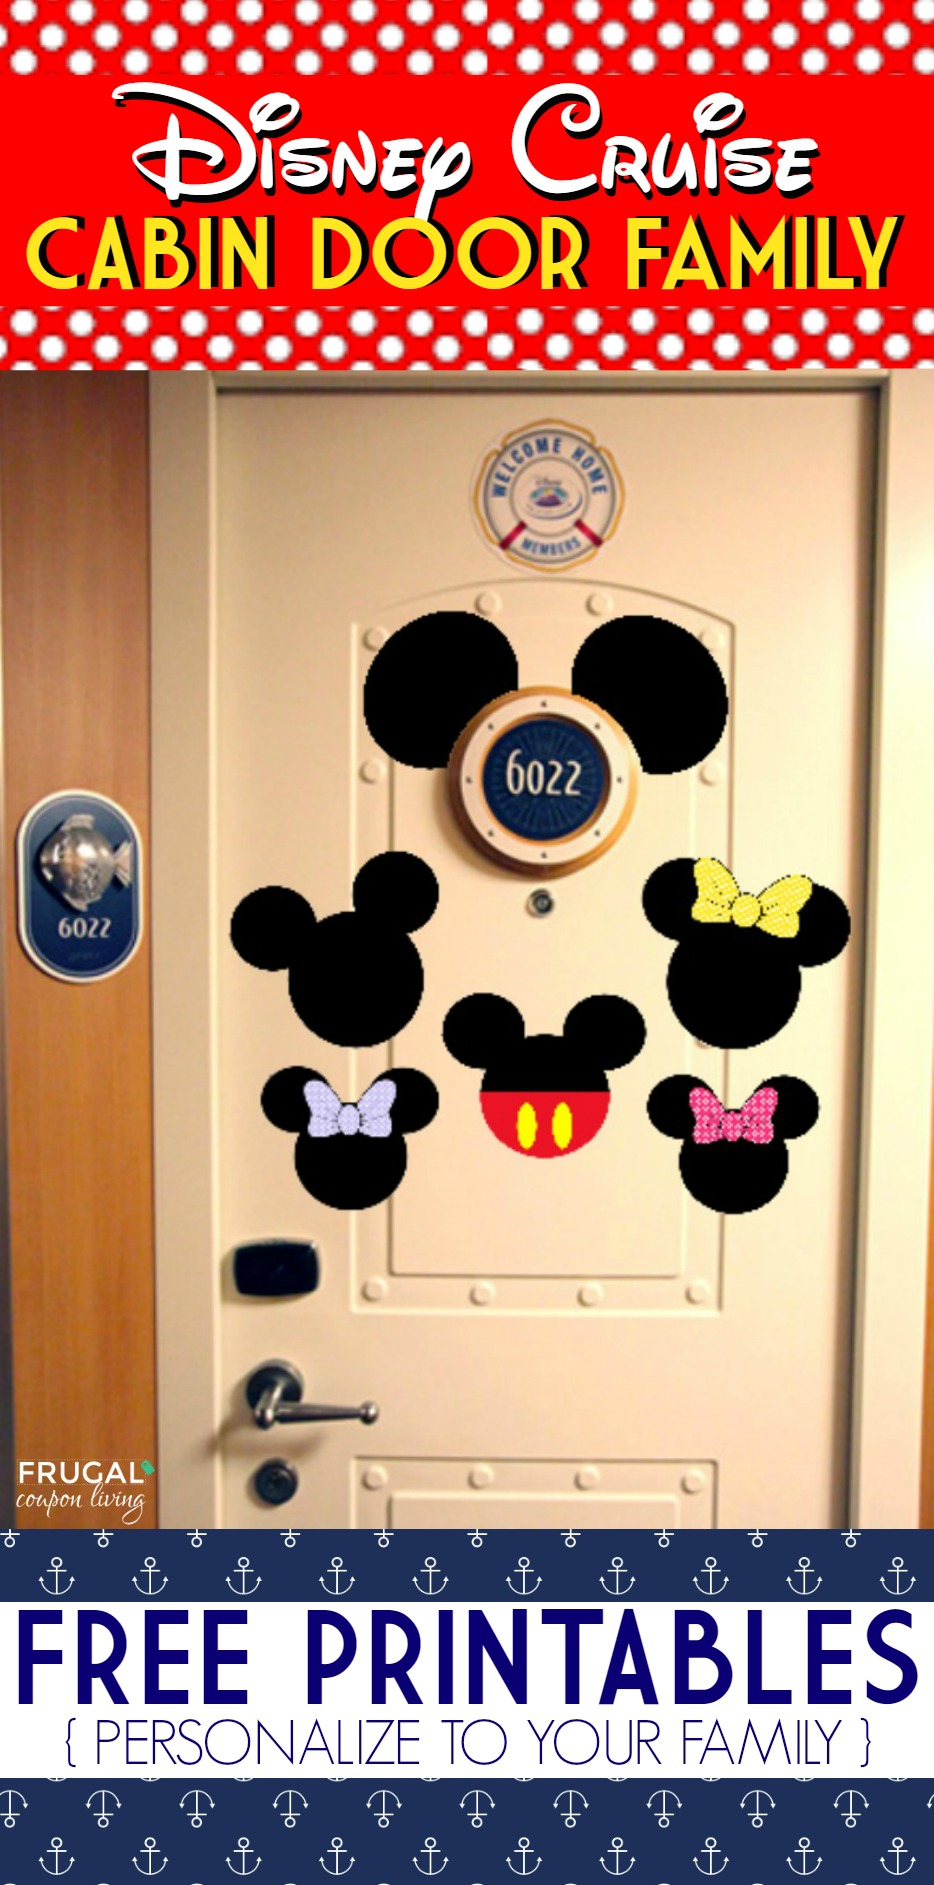 Disney-Cruise-Door-Printable-Title-Frugal-coupon-Living